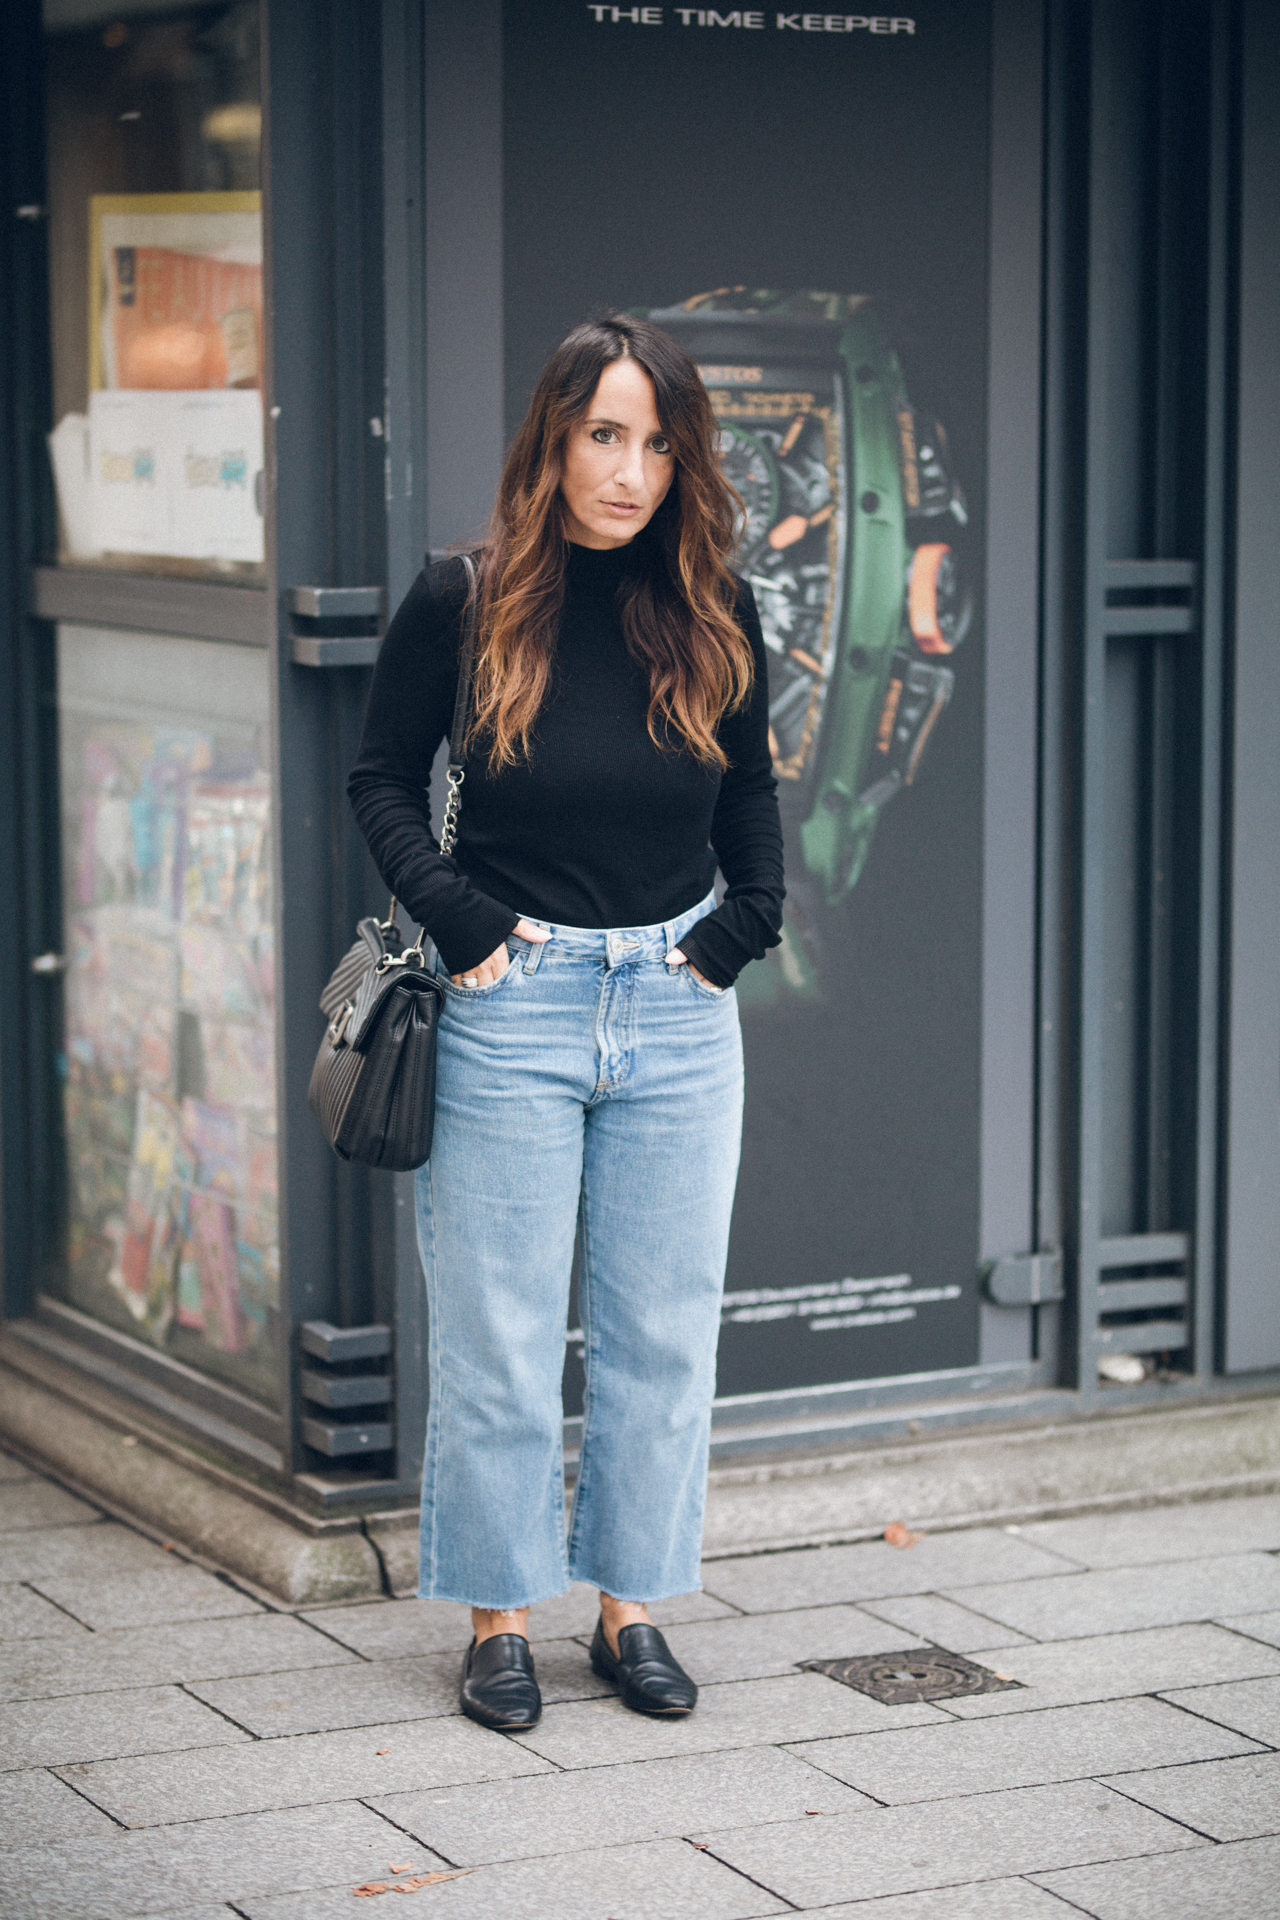 Outfit Mom Jeans Black Shirt Amp Loafer Caroline Kynast